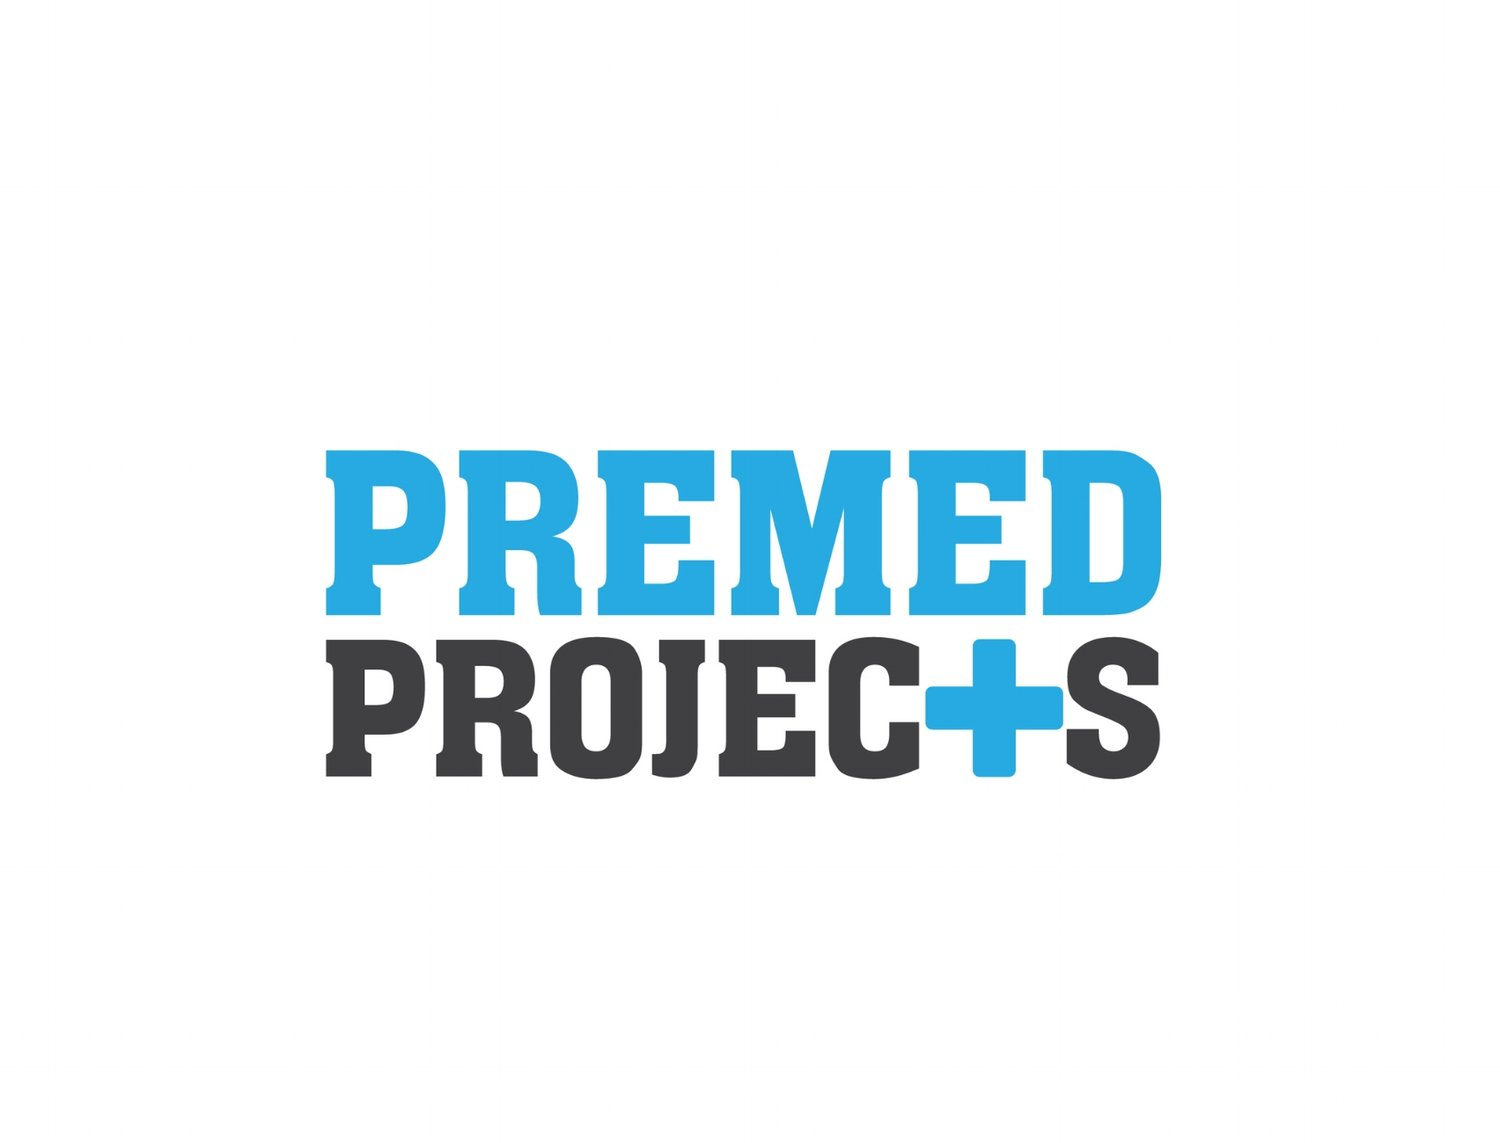 Premed Projects - Work Experience